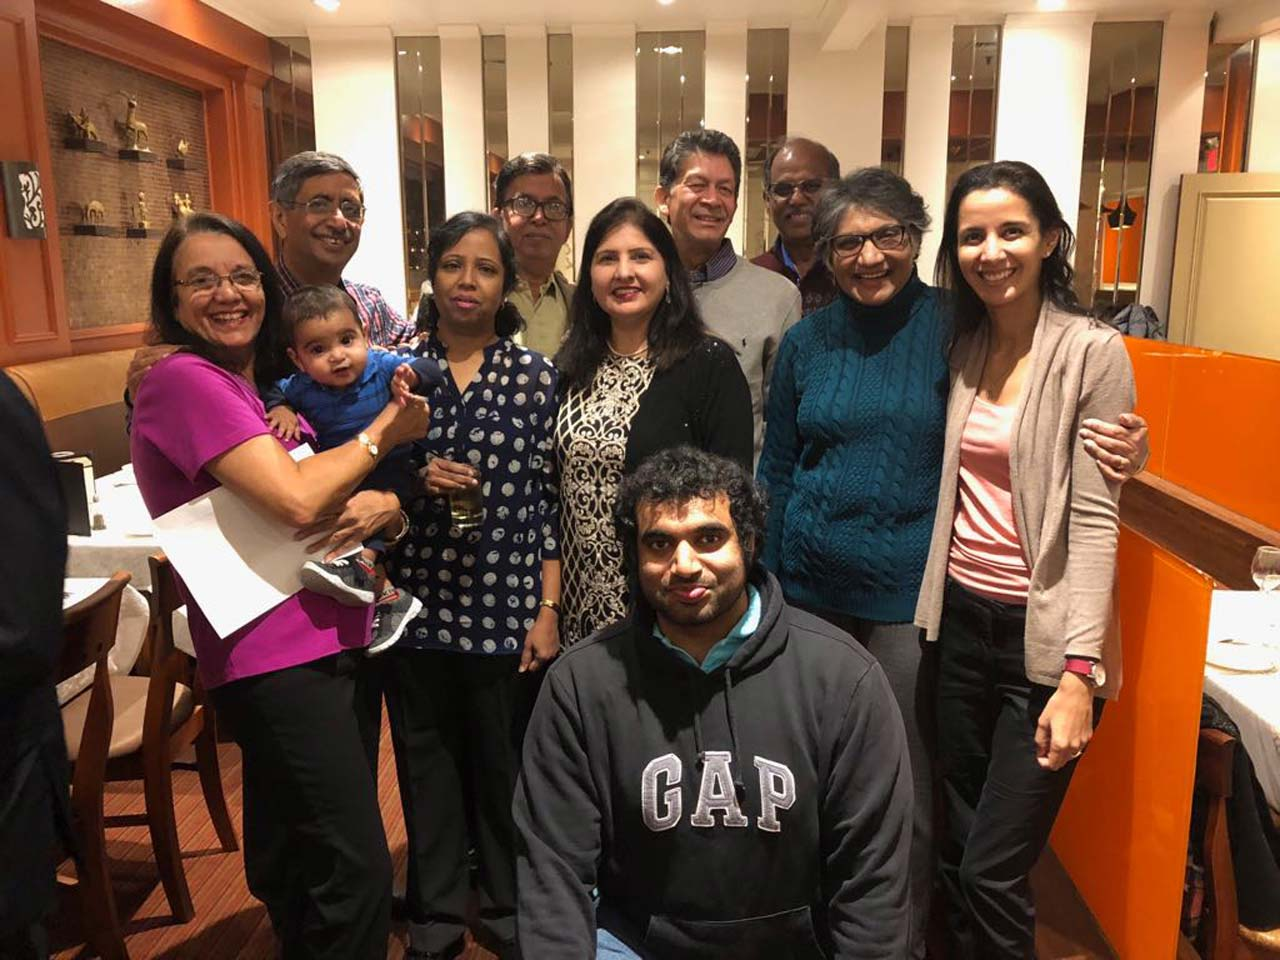 Fr L to R: Yasmin, holding her grandson, Kian Jivraj, and Farouk Khory, Buvana and Vanson Ananthnarayanan, Kiran and Jay Lal, Wilfred and Jasmine Carvalho, Tanaz (Khory) Jivraj, with Marc Carvalho (in front)